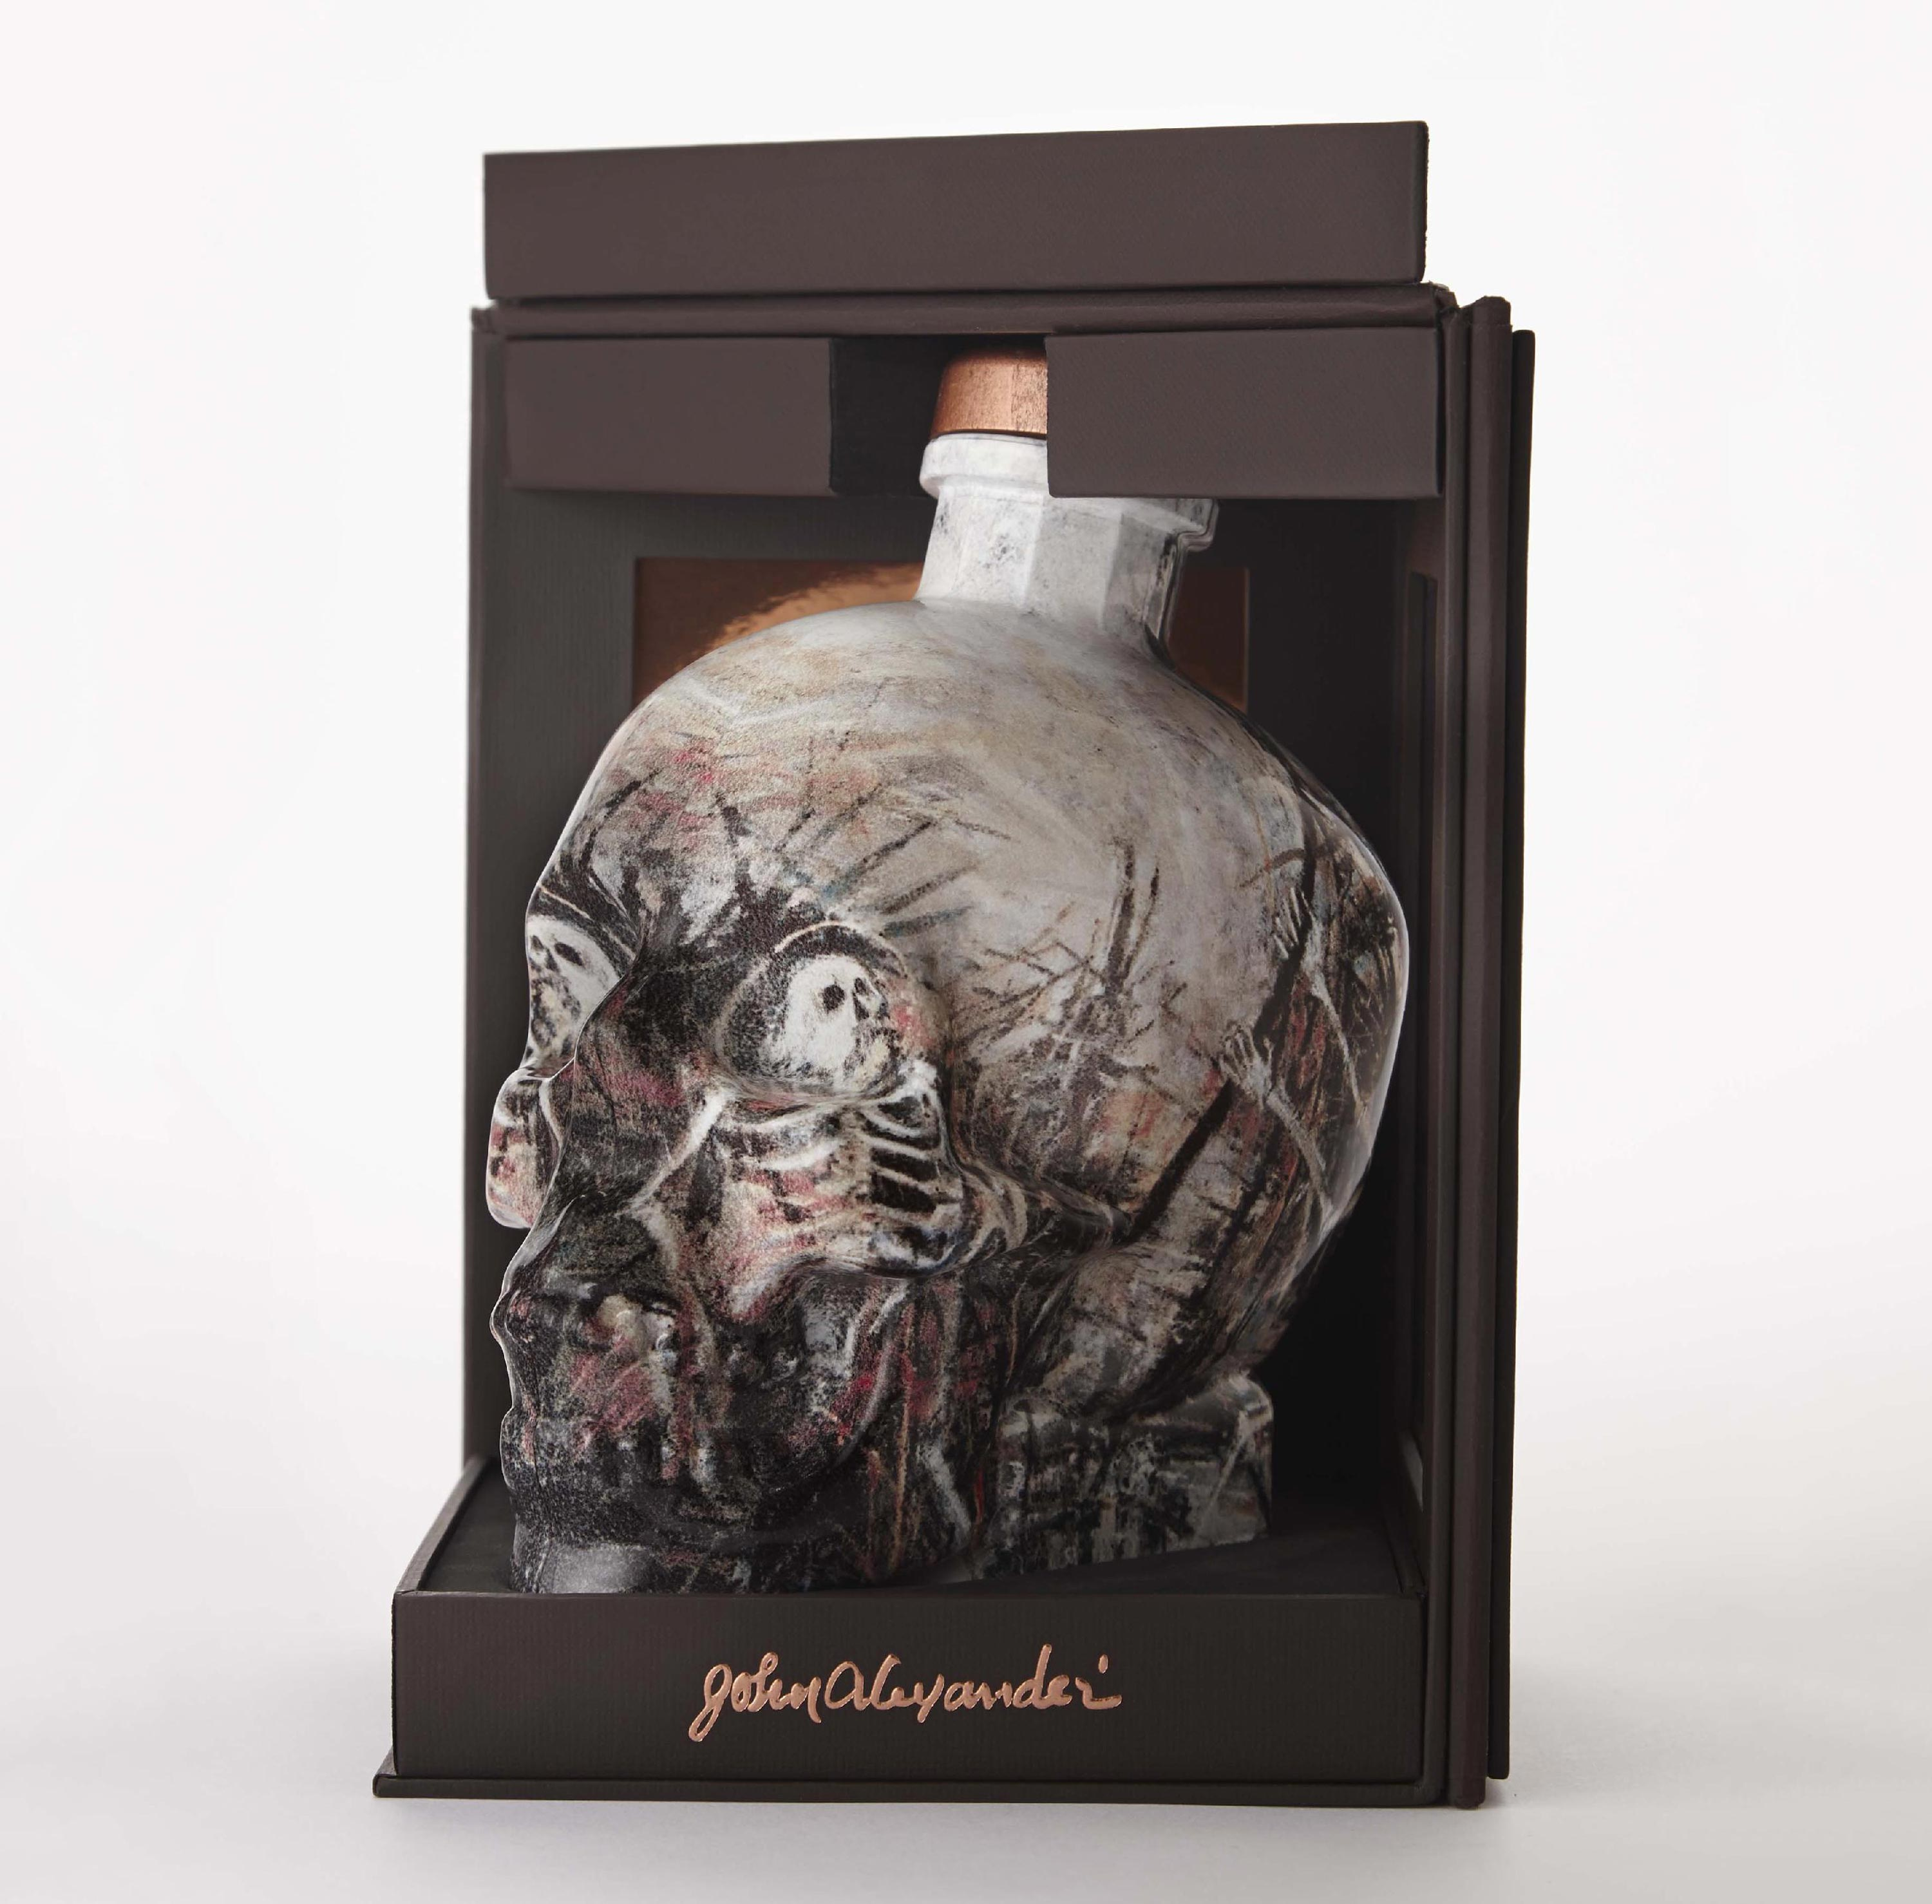 Crystal Head Vodka John Alexander Artist Series Bottle and packaging